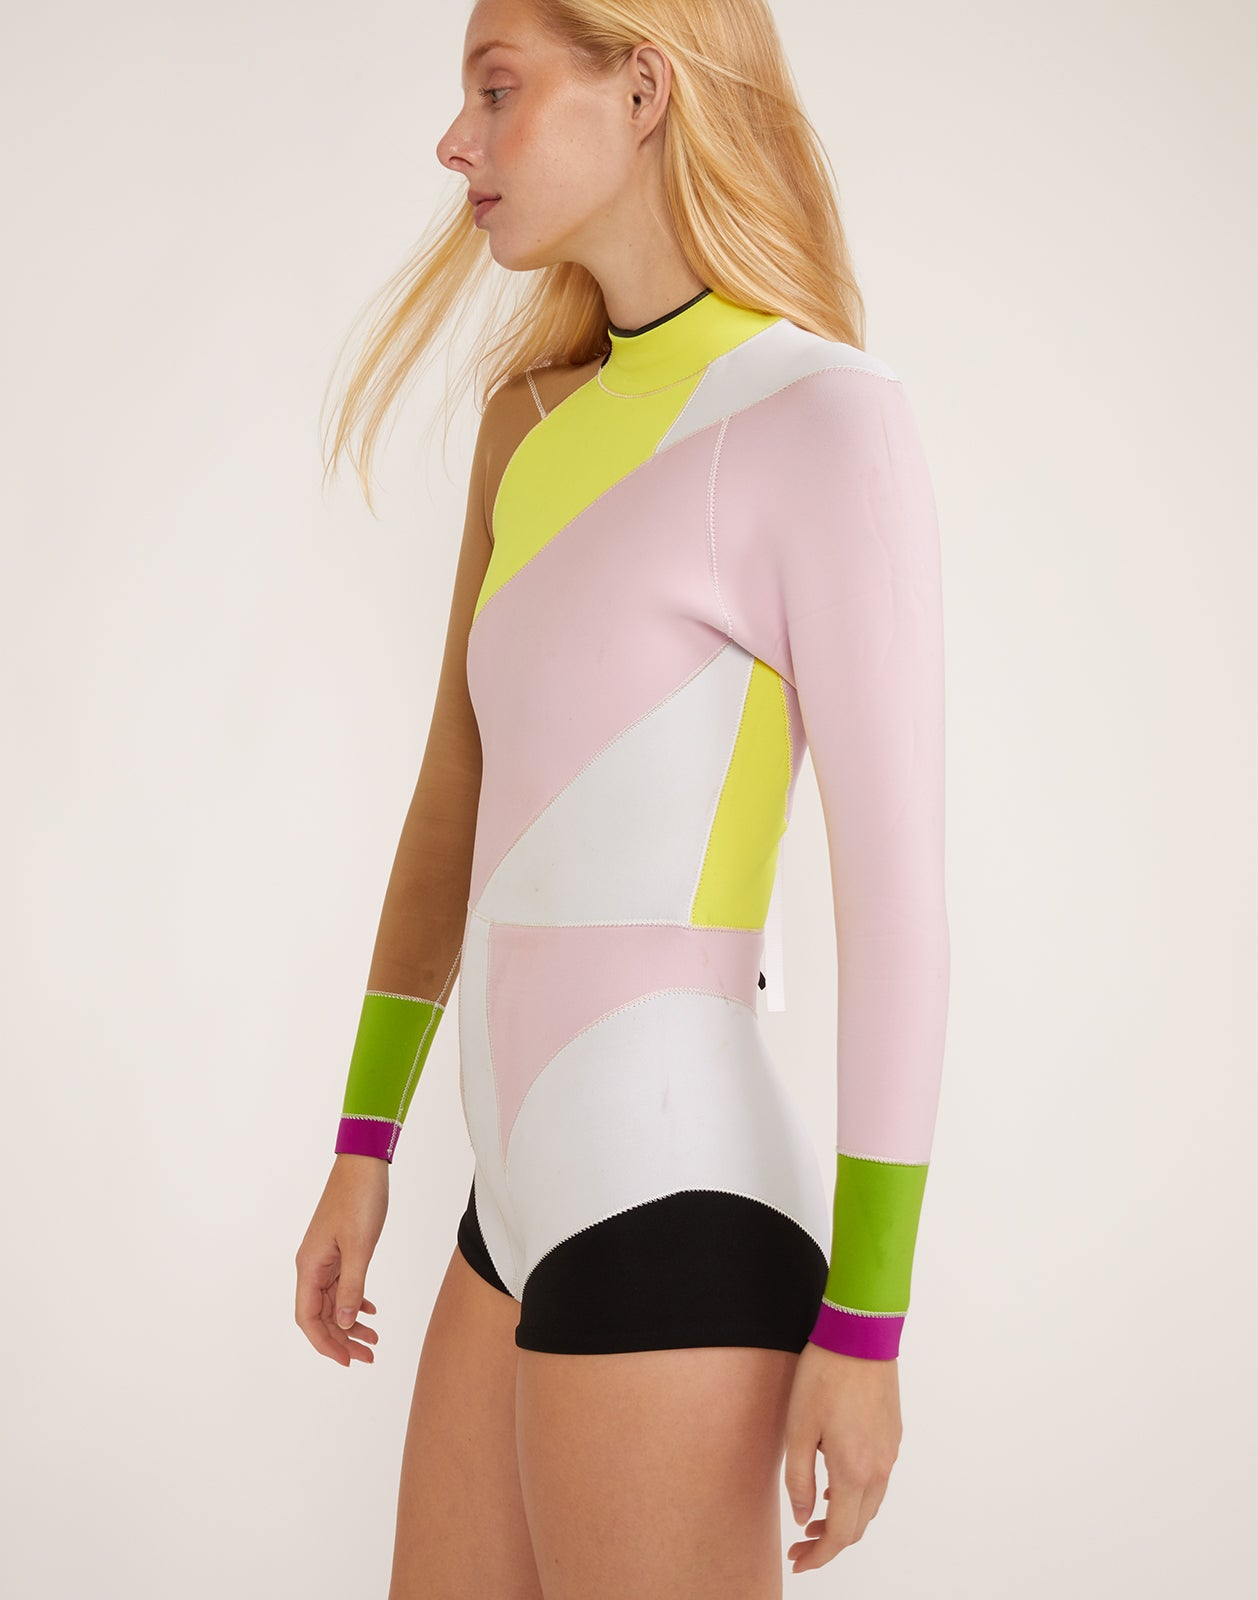 Side view of asymmetrical design Quincy Wetsuit with long sleeves